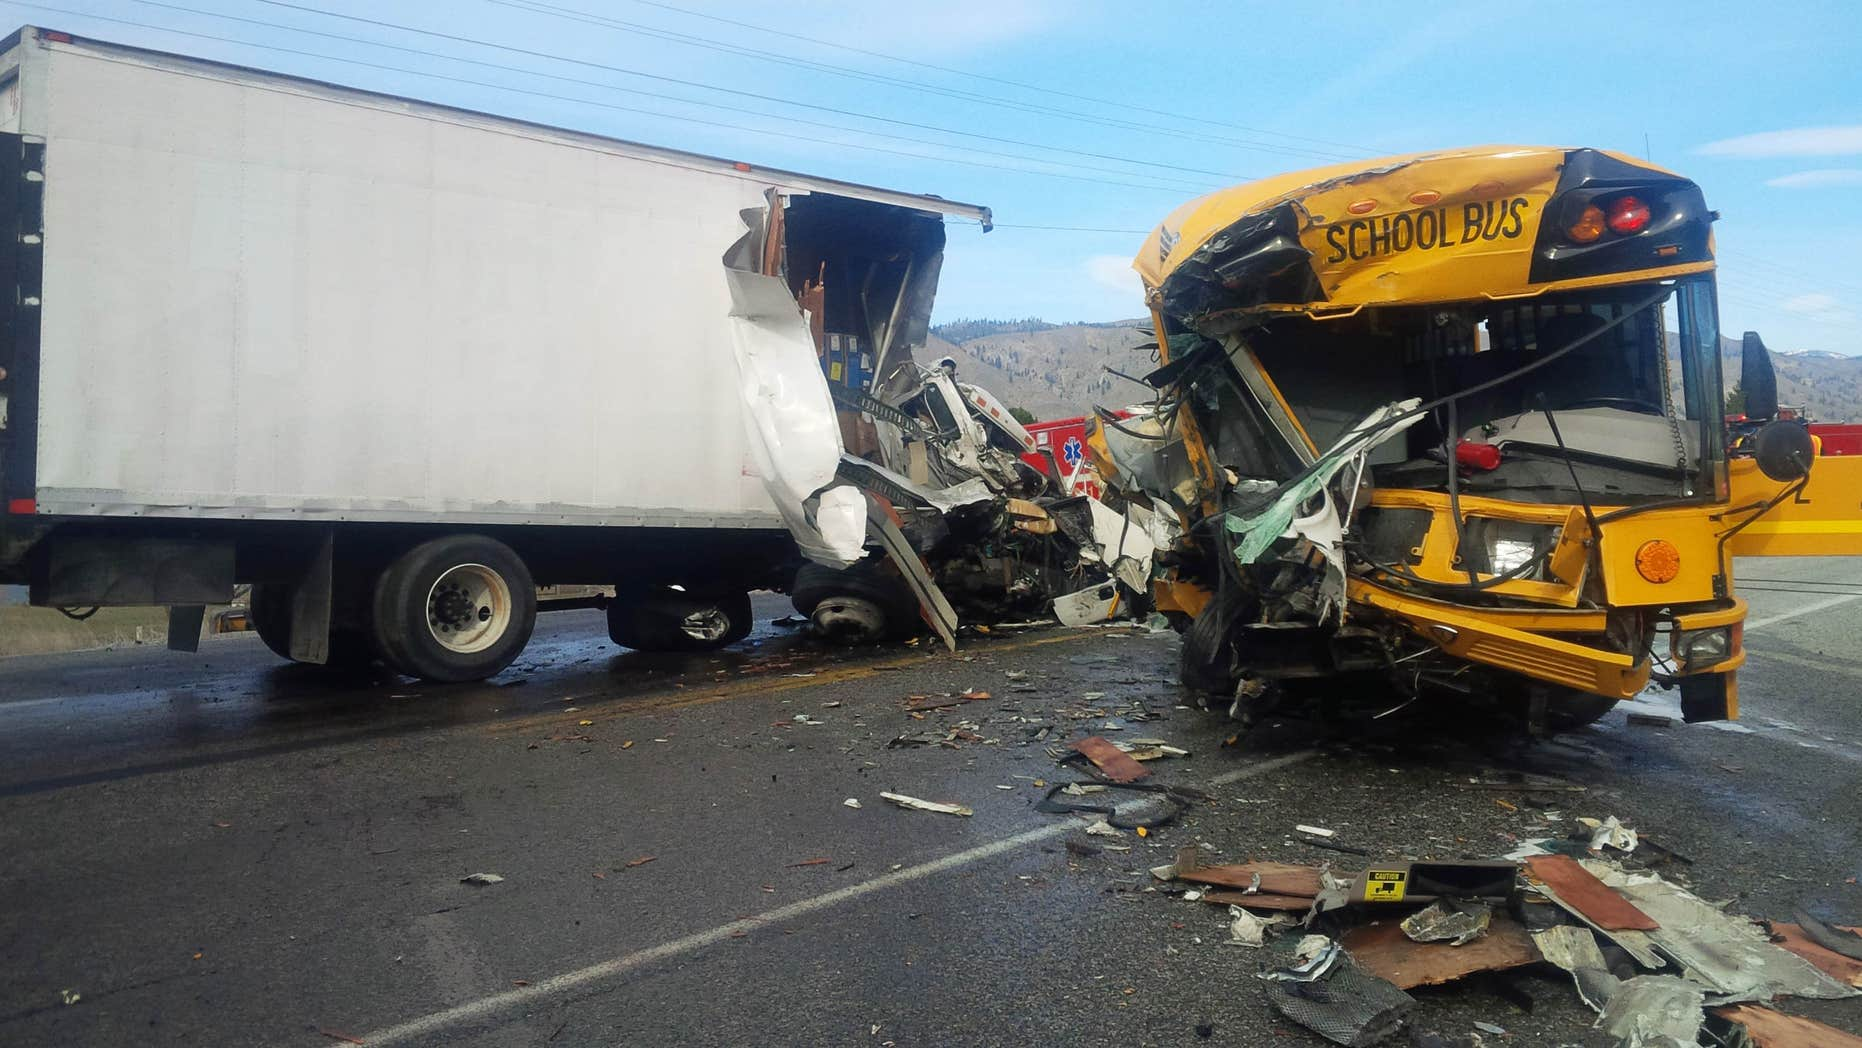 March 5, 2015: This photo provided by the Washington State Patrol shows the scene of an accident in which a motorist was killed and five students and others were injured in a crash involving a school bus, box truck and car near Orondo in Central Washington state.